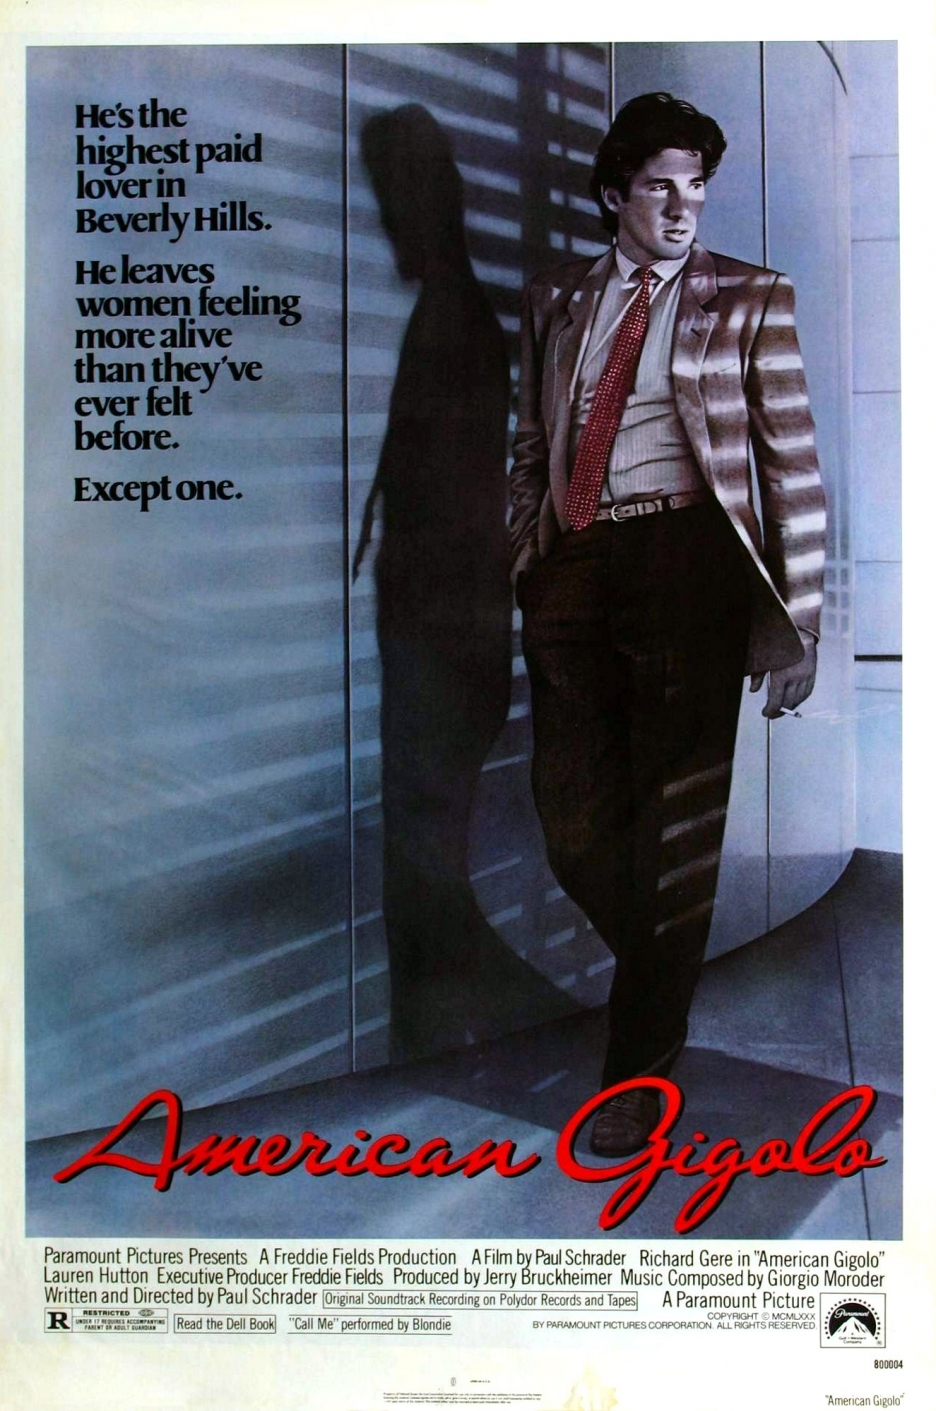 American-Gigolo-Richard-Gere-Movie-Poster.jpg